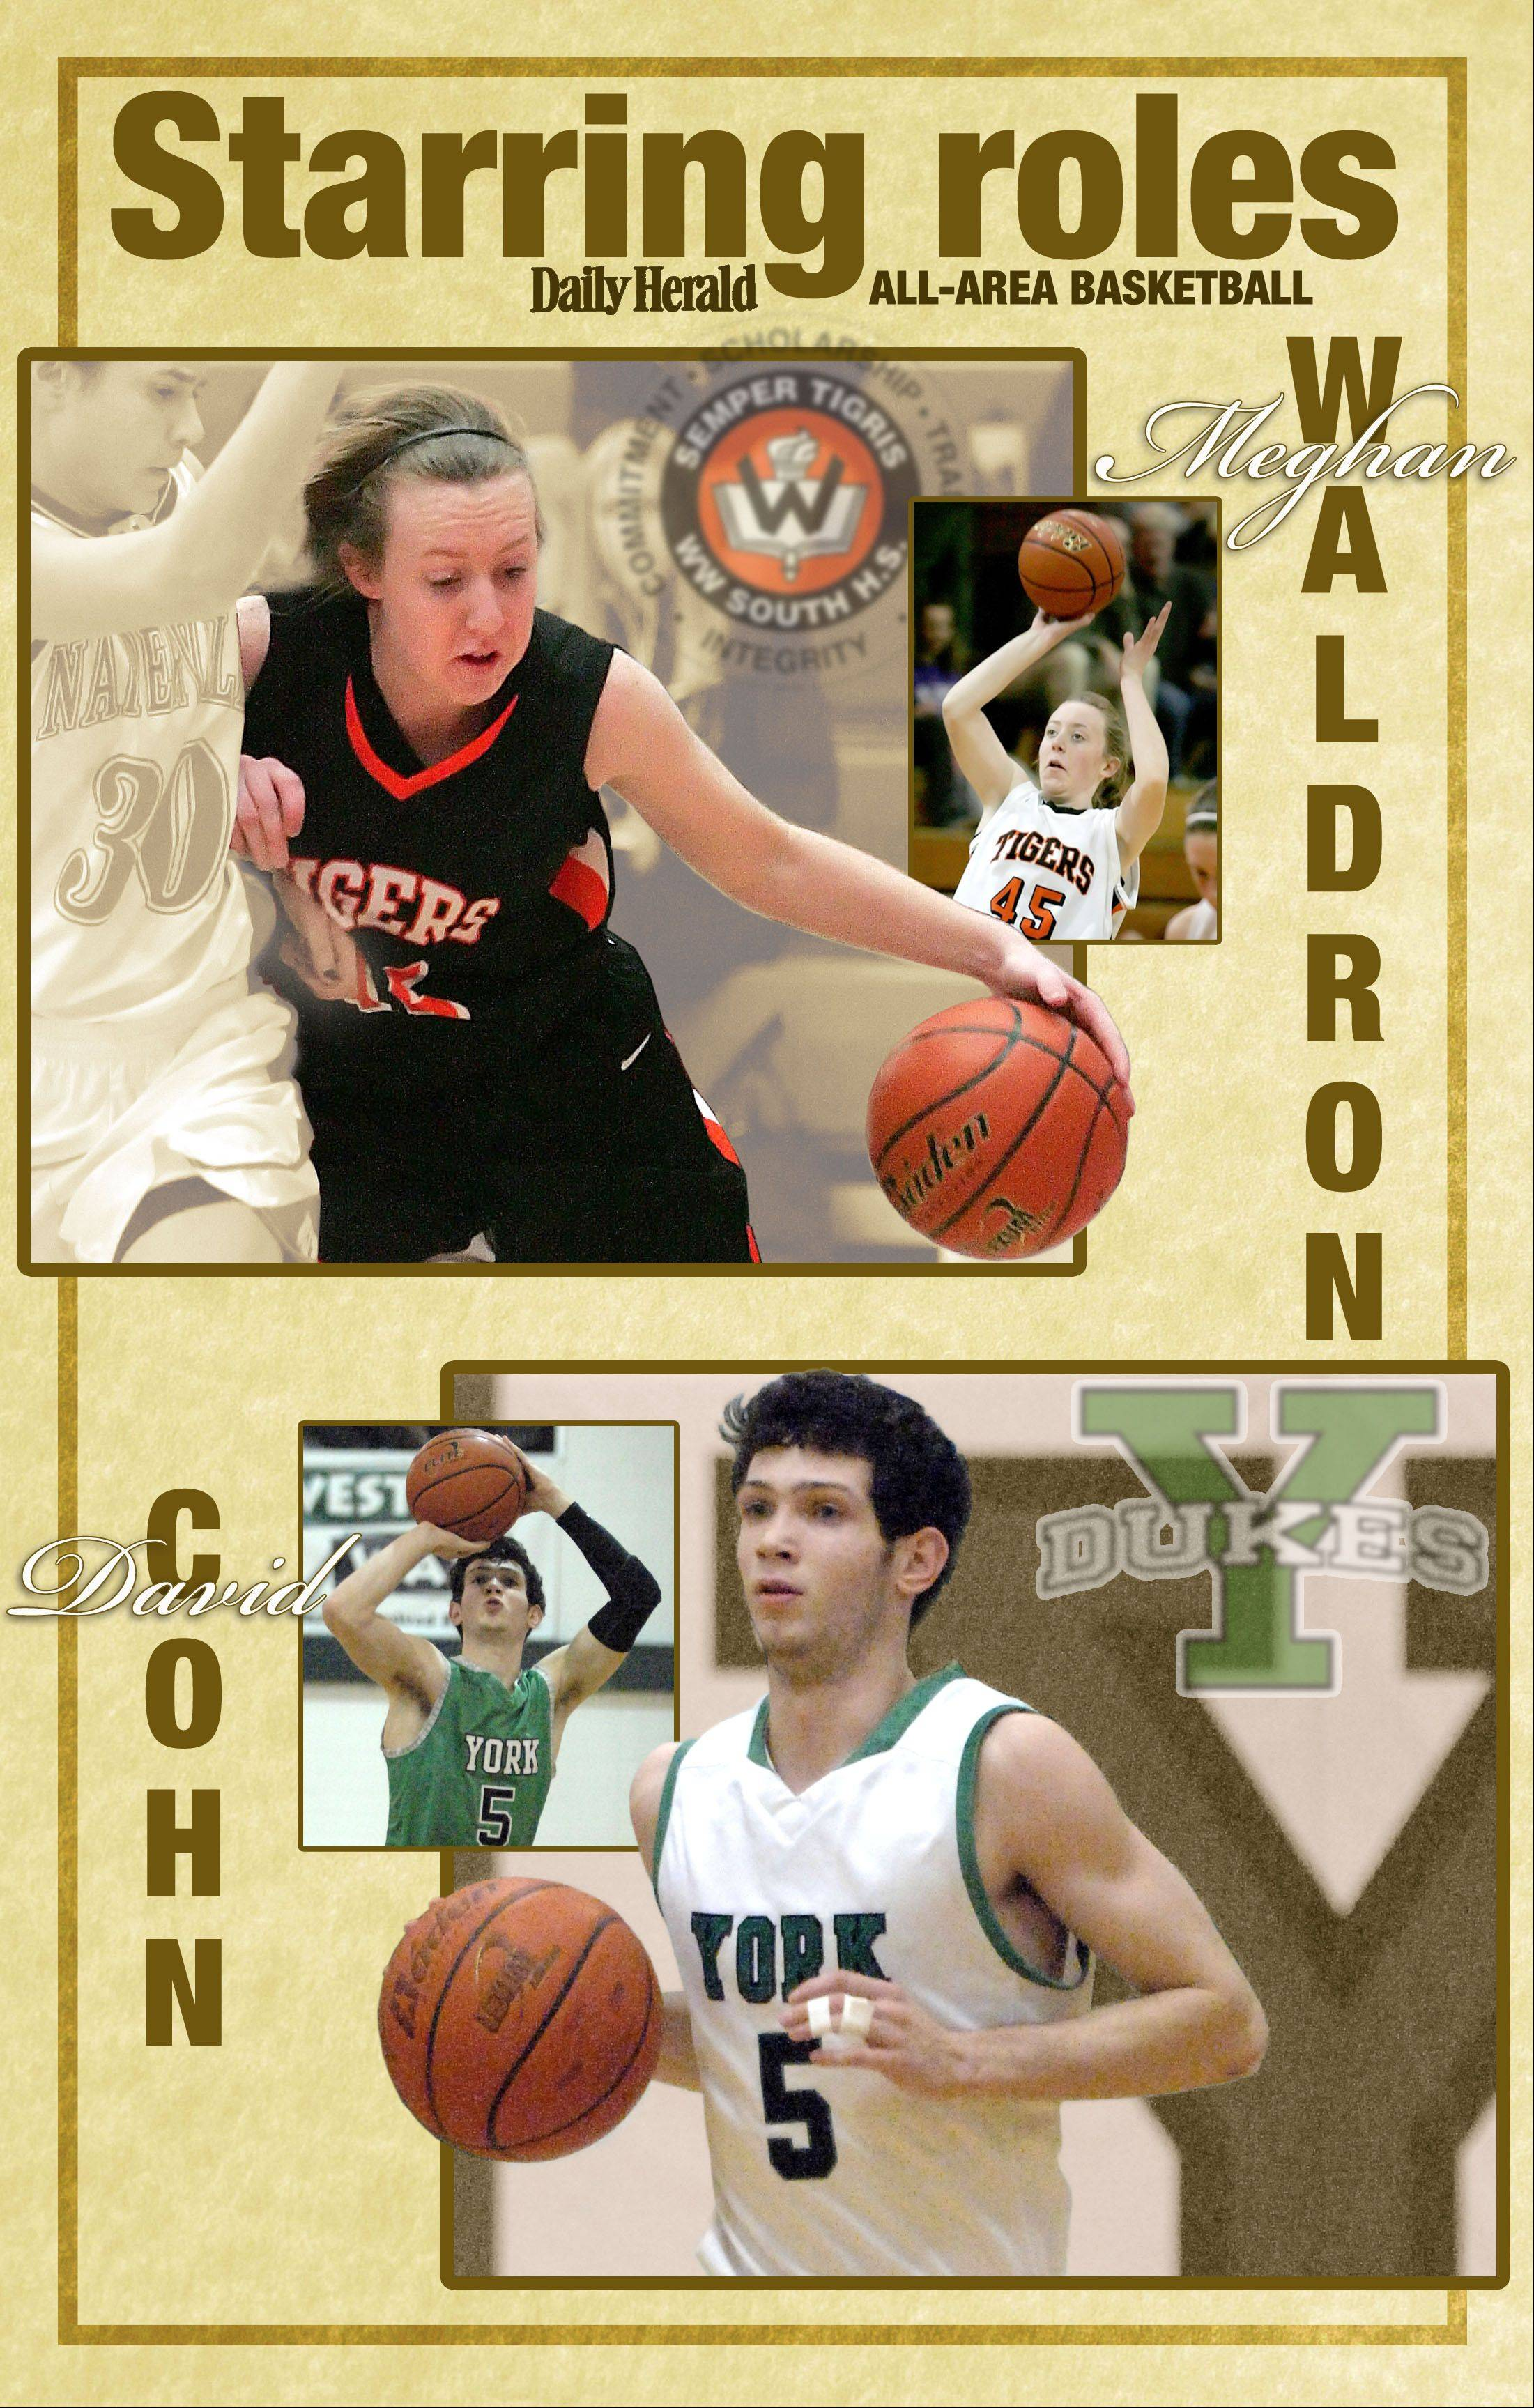 All-area Daily Herald basketball players in DuPage County are Meghan Waldron of Wheaton Warrenville South and David Cohn of York.